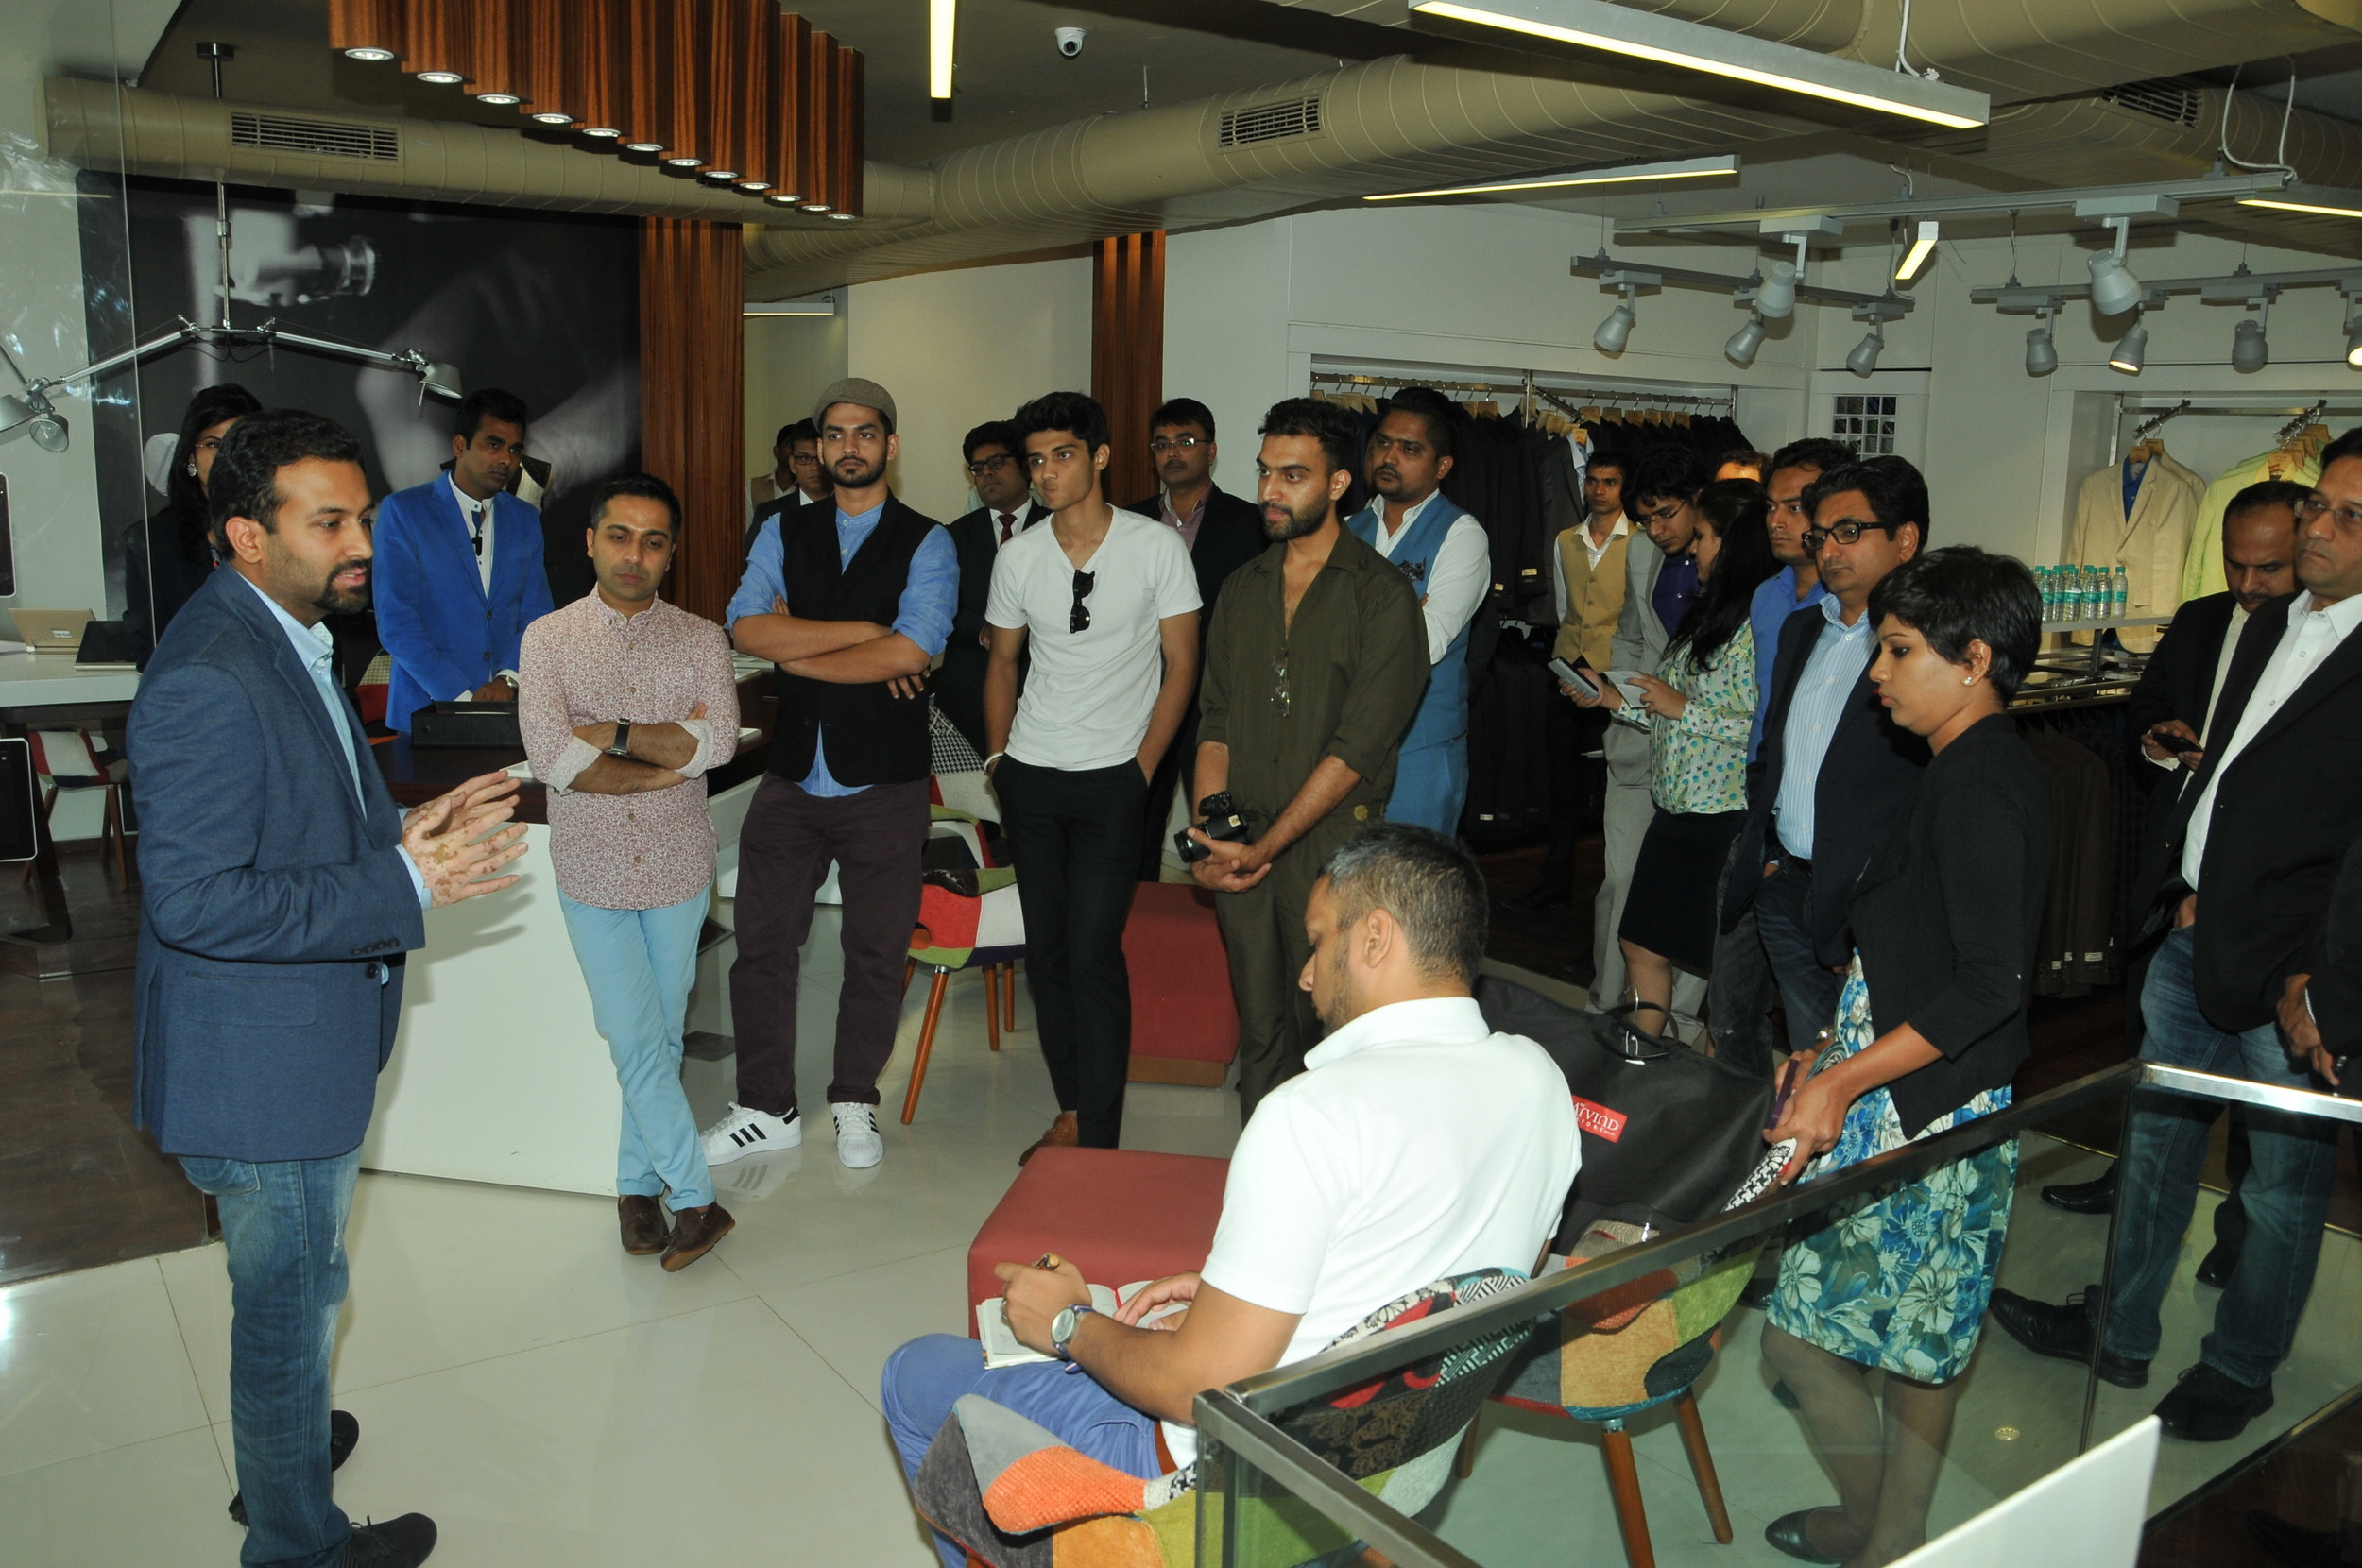 Executive Director at Arvind Ltd – Mr. Kulin Lalbhai explaining the vision for the brand and its expansion.